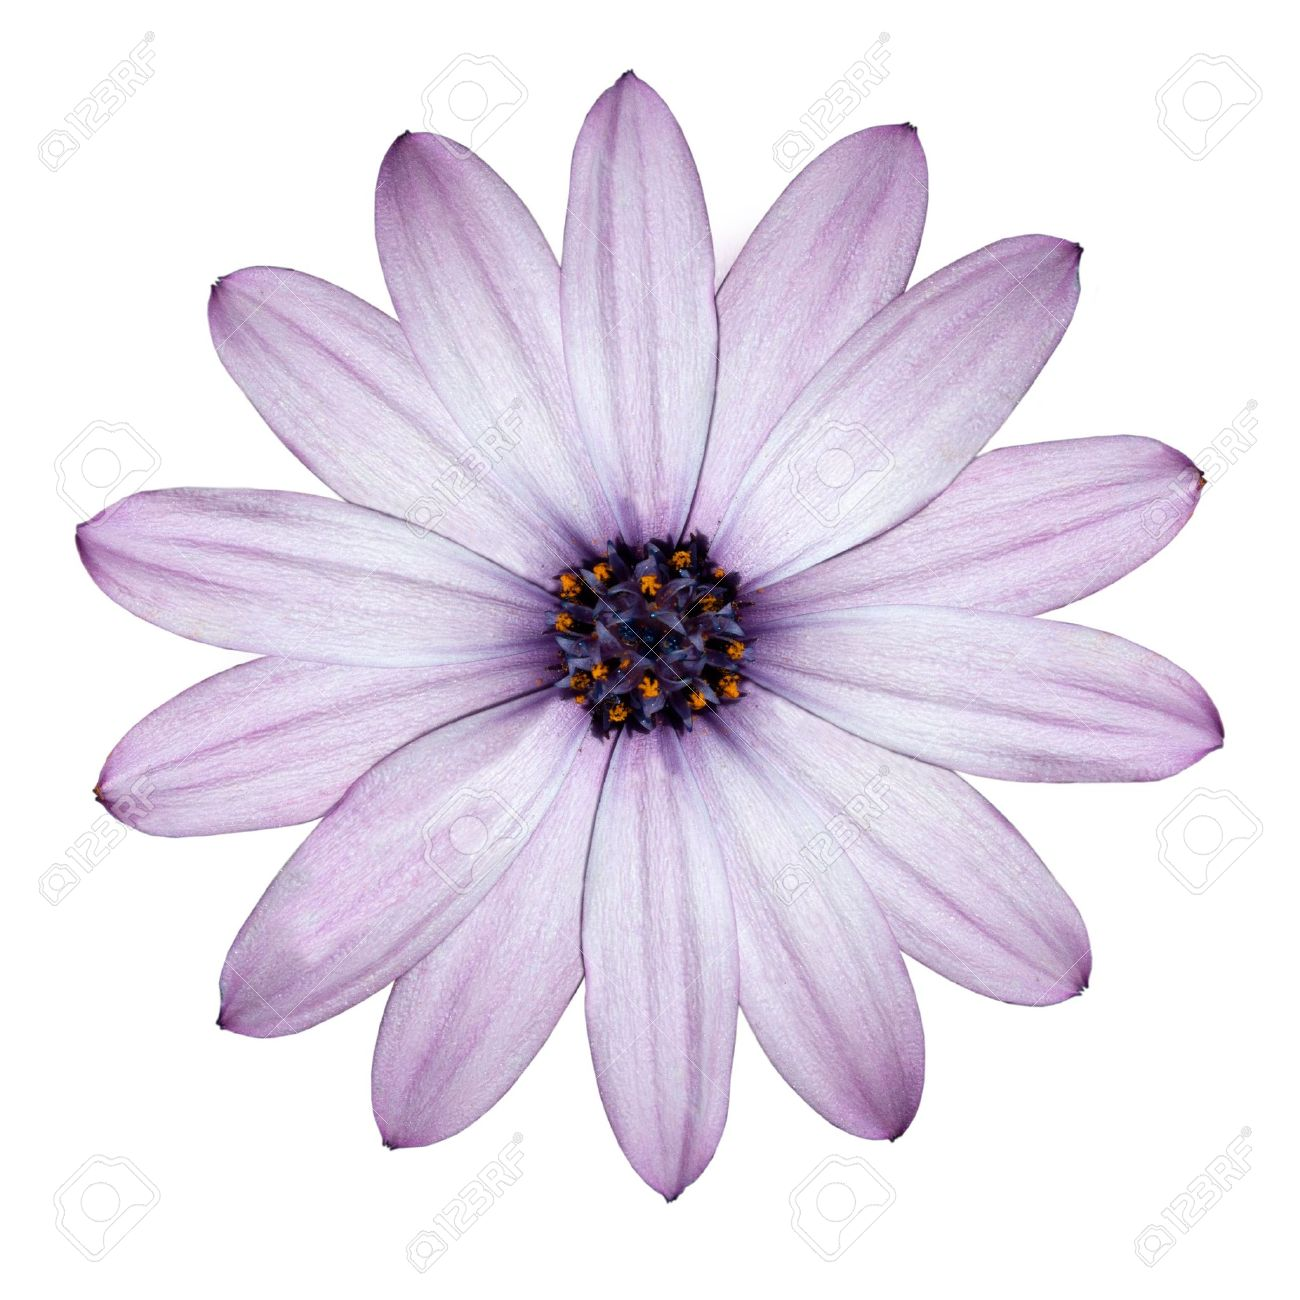 Beautiful light purple daisy blossoming osteospermum flower beautiful light purple daisy blossoming osteospermum flower head top view isolated on white background mightylinksfo